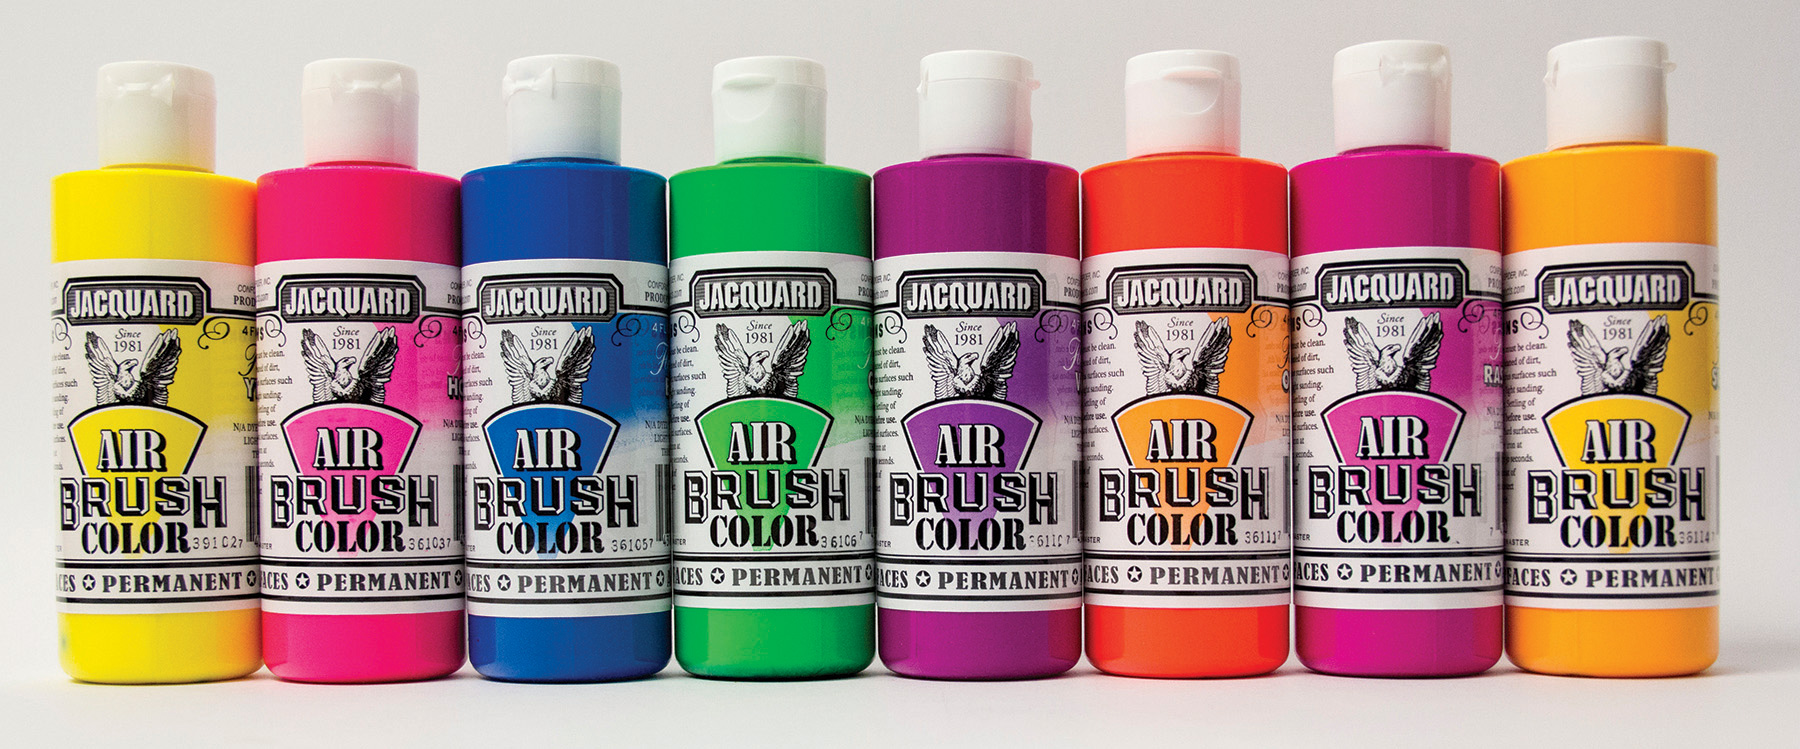 Buy Jacquard Airbrush Color